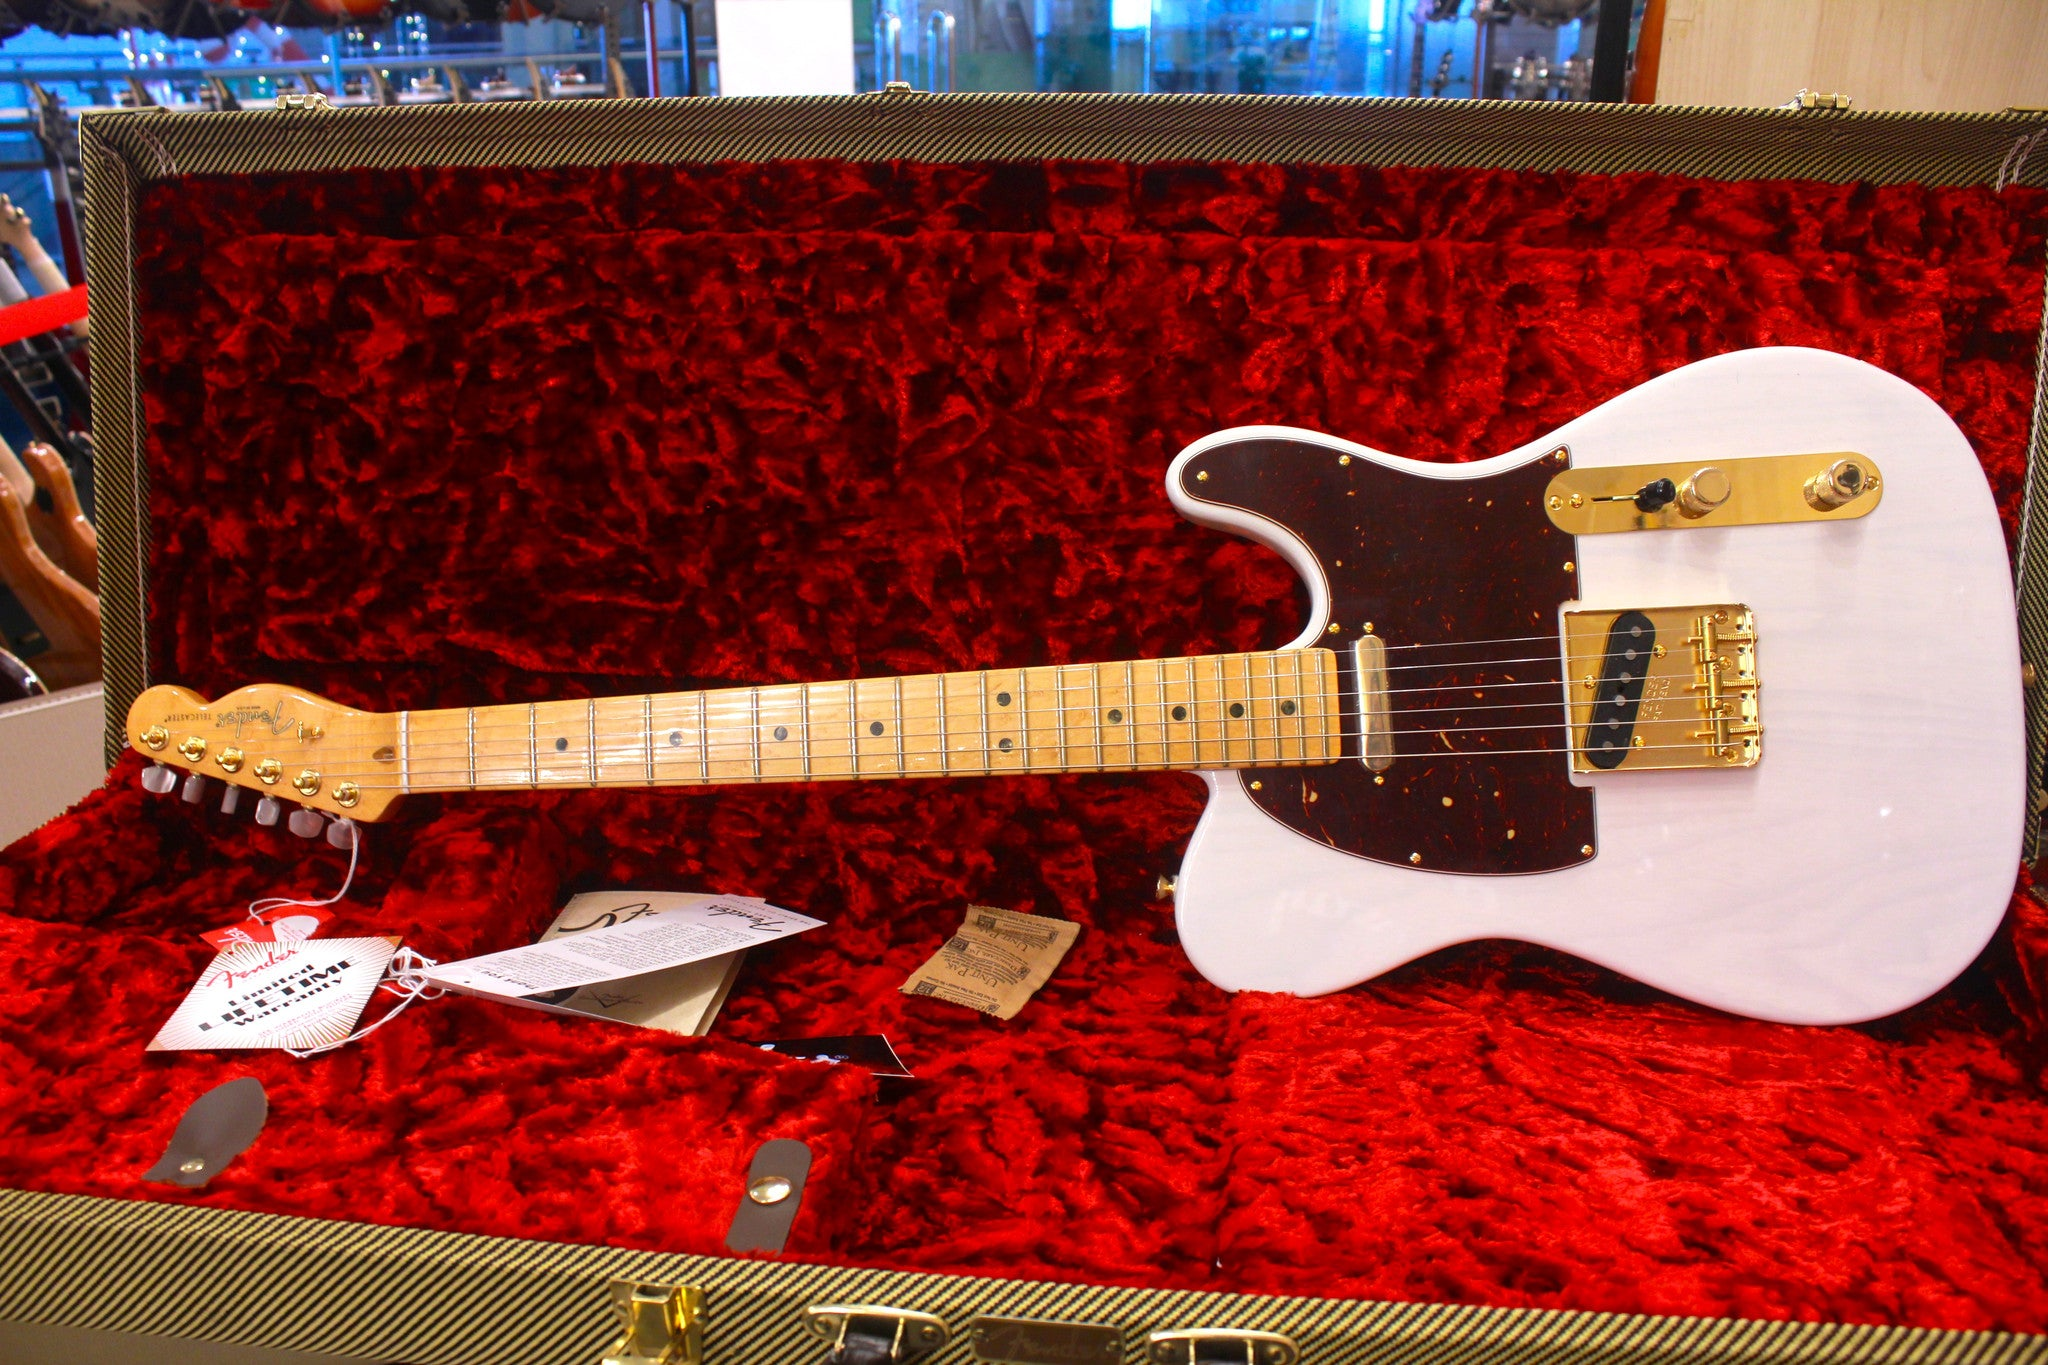 Fender 2016 Limited Edition Select Light Ash Telecaster - White Blonde HIENDGUITAR.COM - HIENDGUITAR.COM